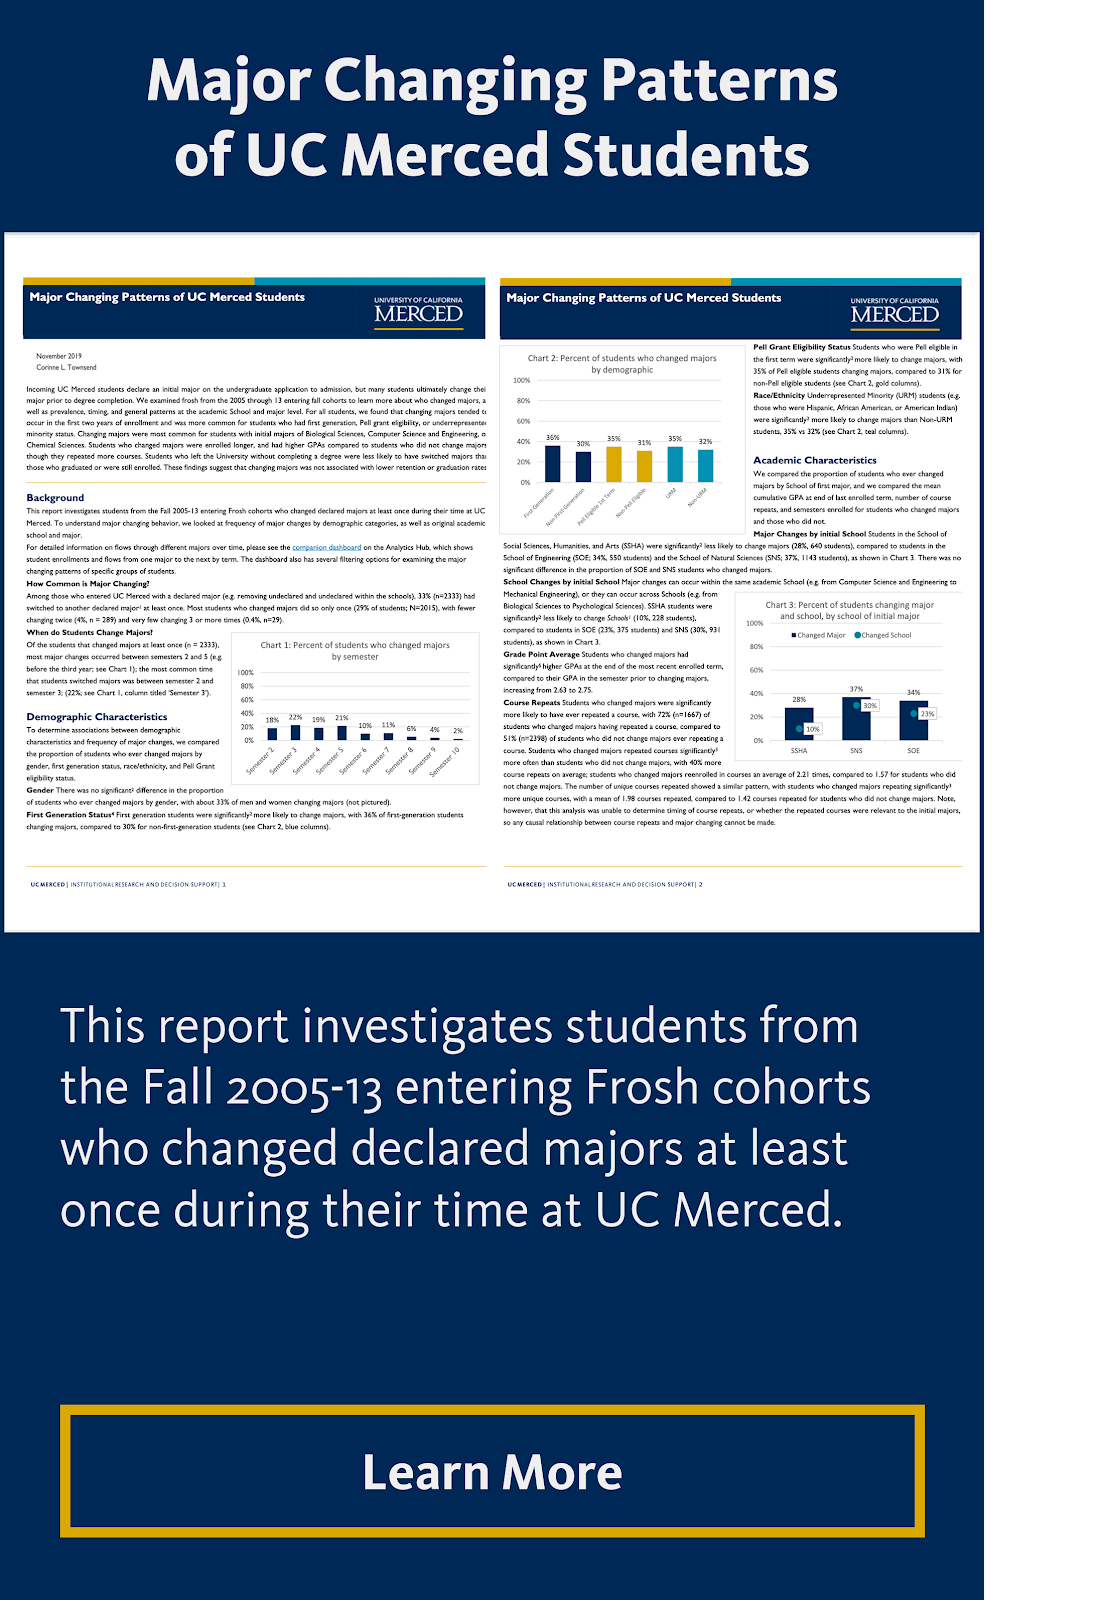 Major Changing Patterns of UC Merced Students